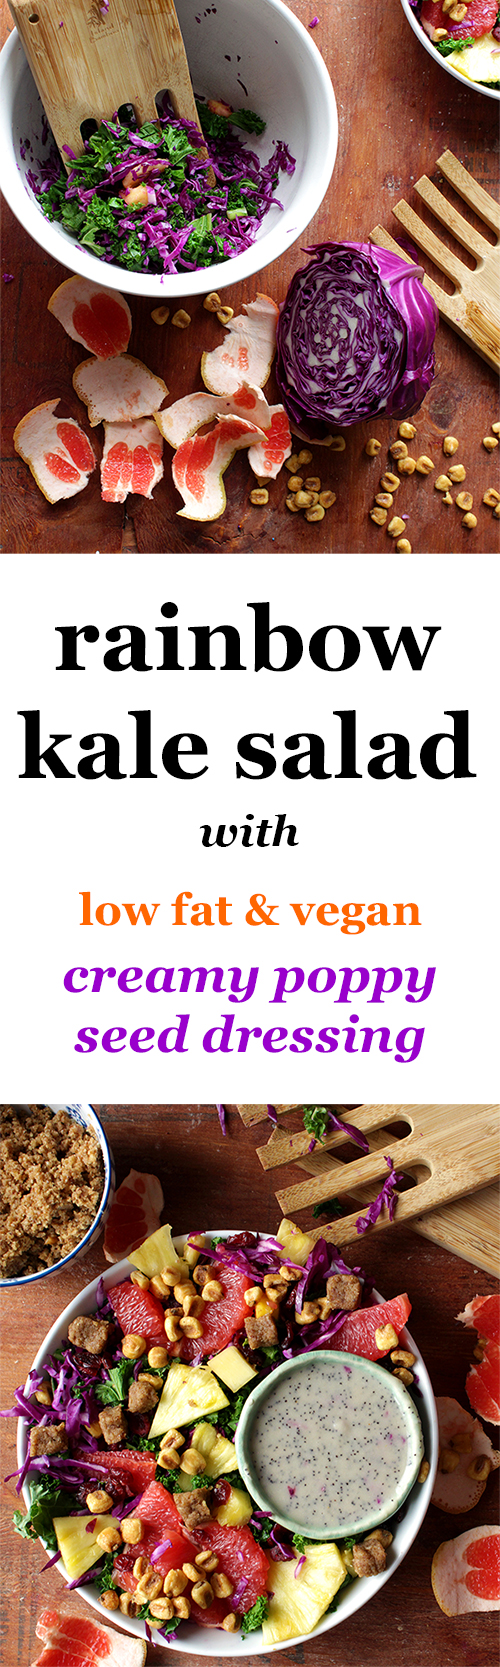 rainbow-kale-salad-with-creamy-low-fat-vegan-dressing-vegan-low-fat-poppy-seed-dressing-poppy-seed-dressing-recipe